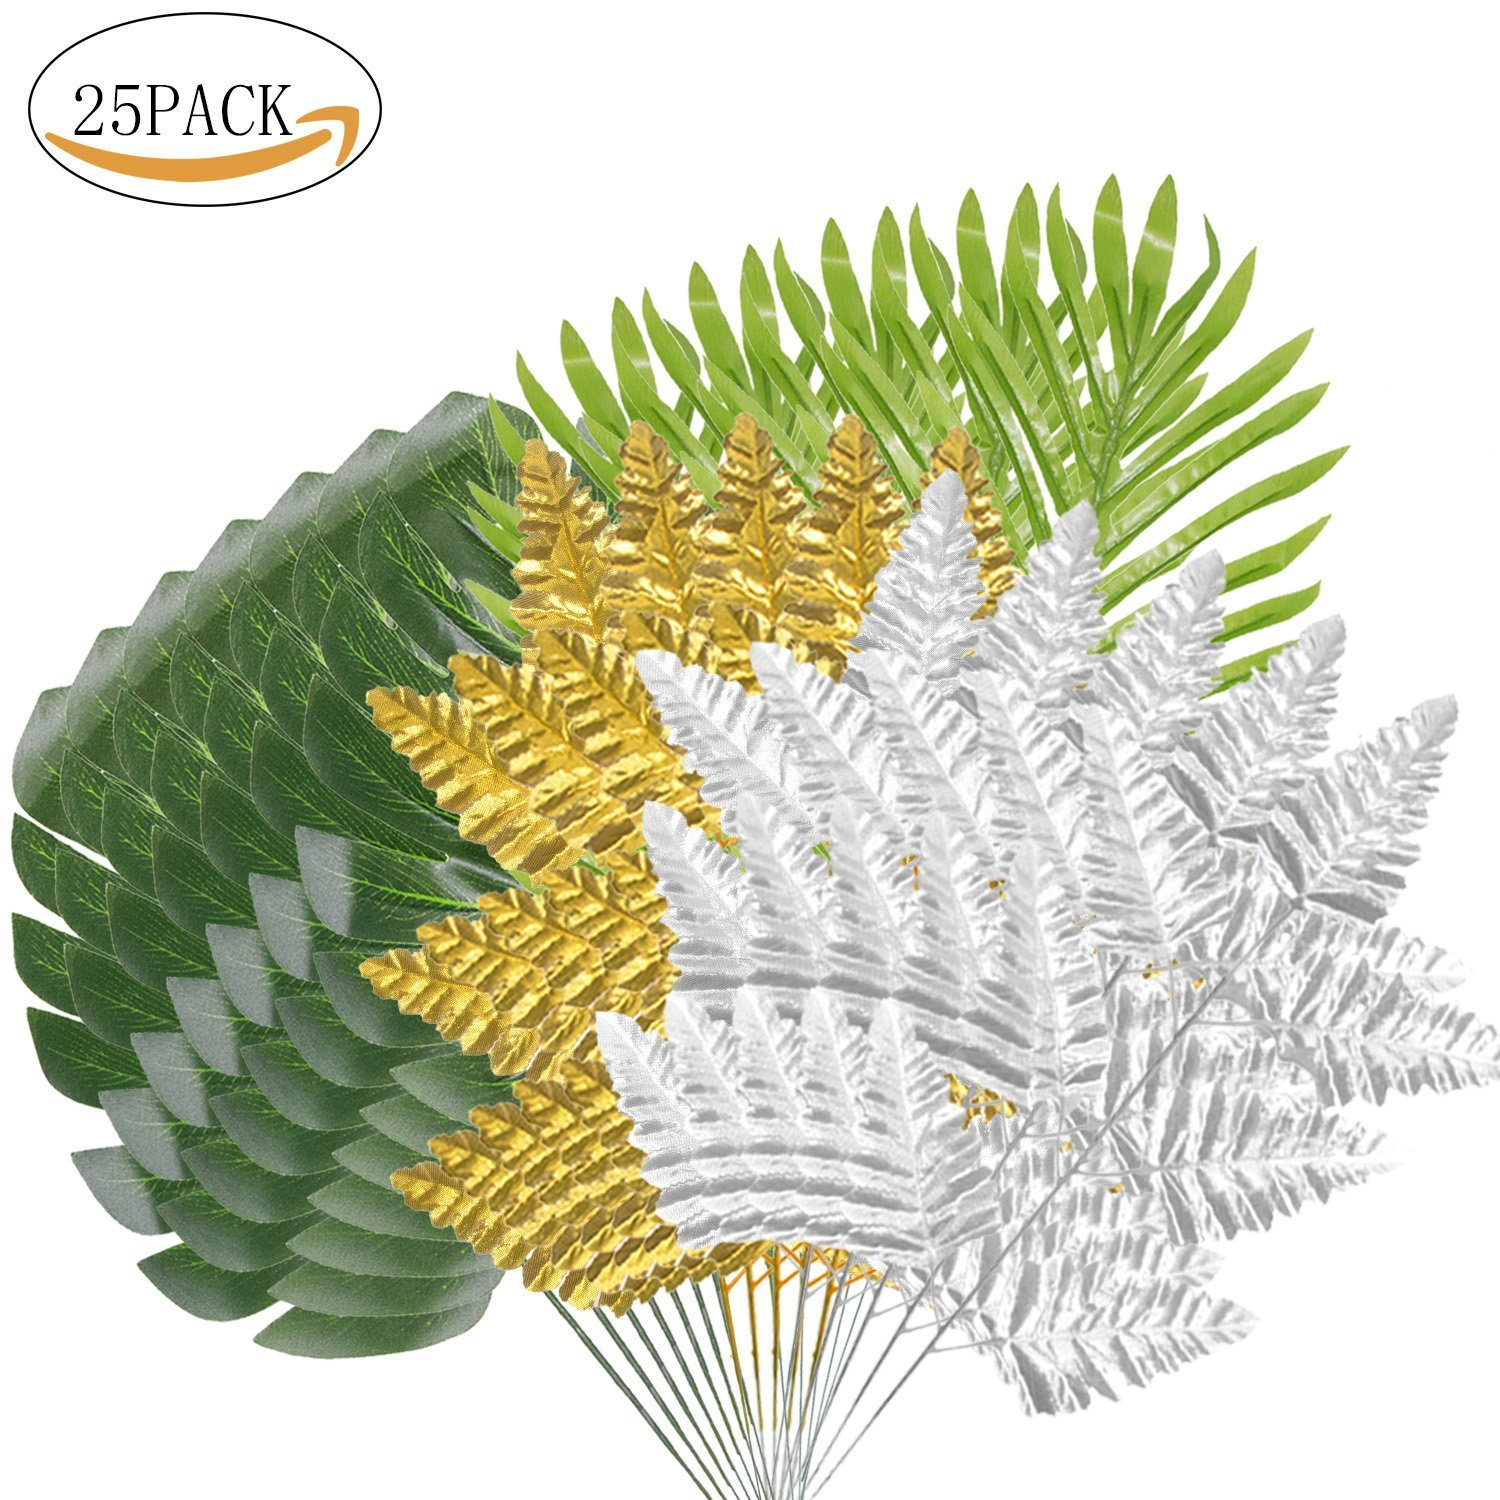 25 Packs VSTON Christmas Party Decoration Palm Leaves Packs Set with Green Golden Silver Fabric Leaves for Christmas Holiday New Year Home Party Decoration